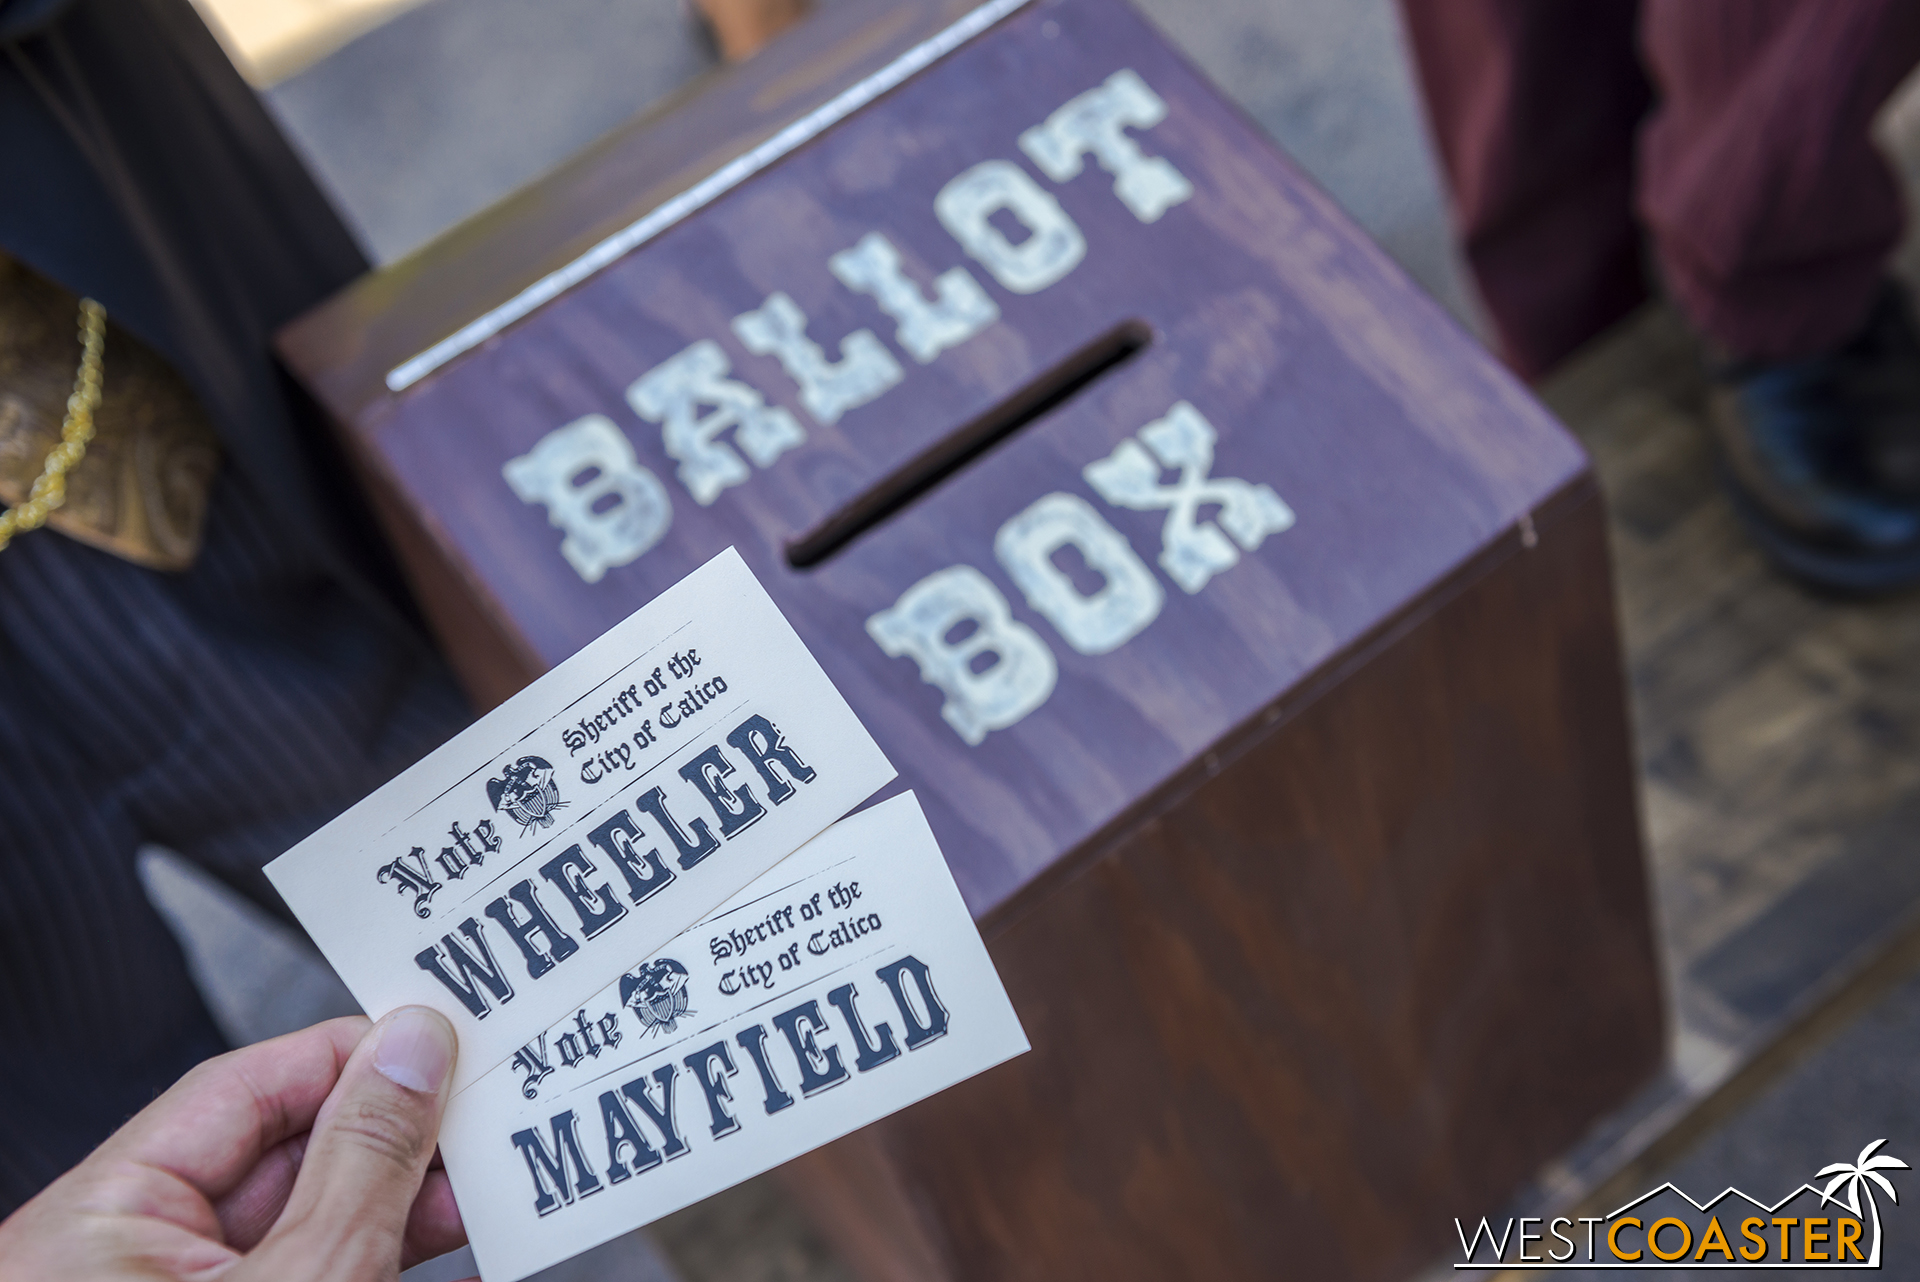 It's open to all citizens (and guests). Vote for Wheeler or Mayfield. The votes all actually count.